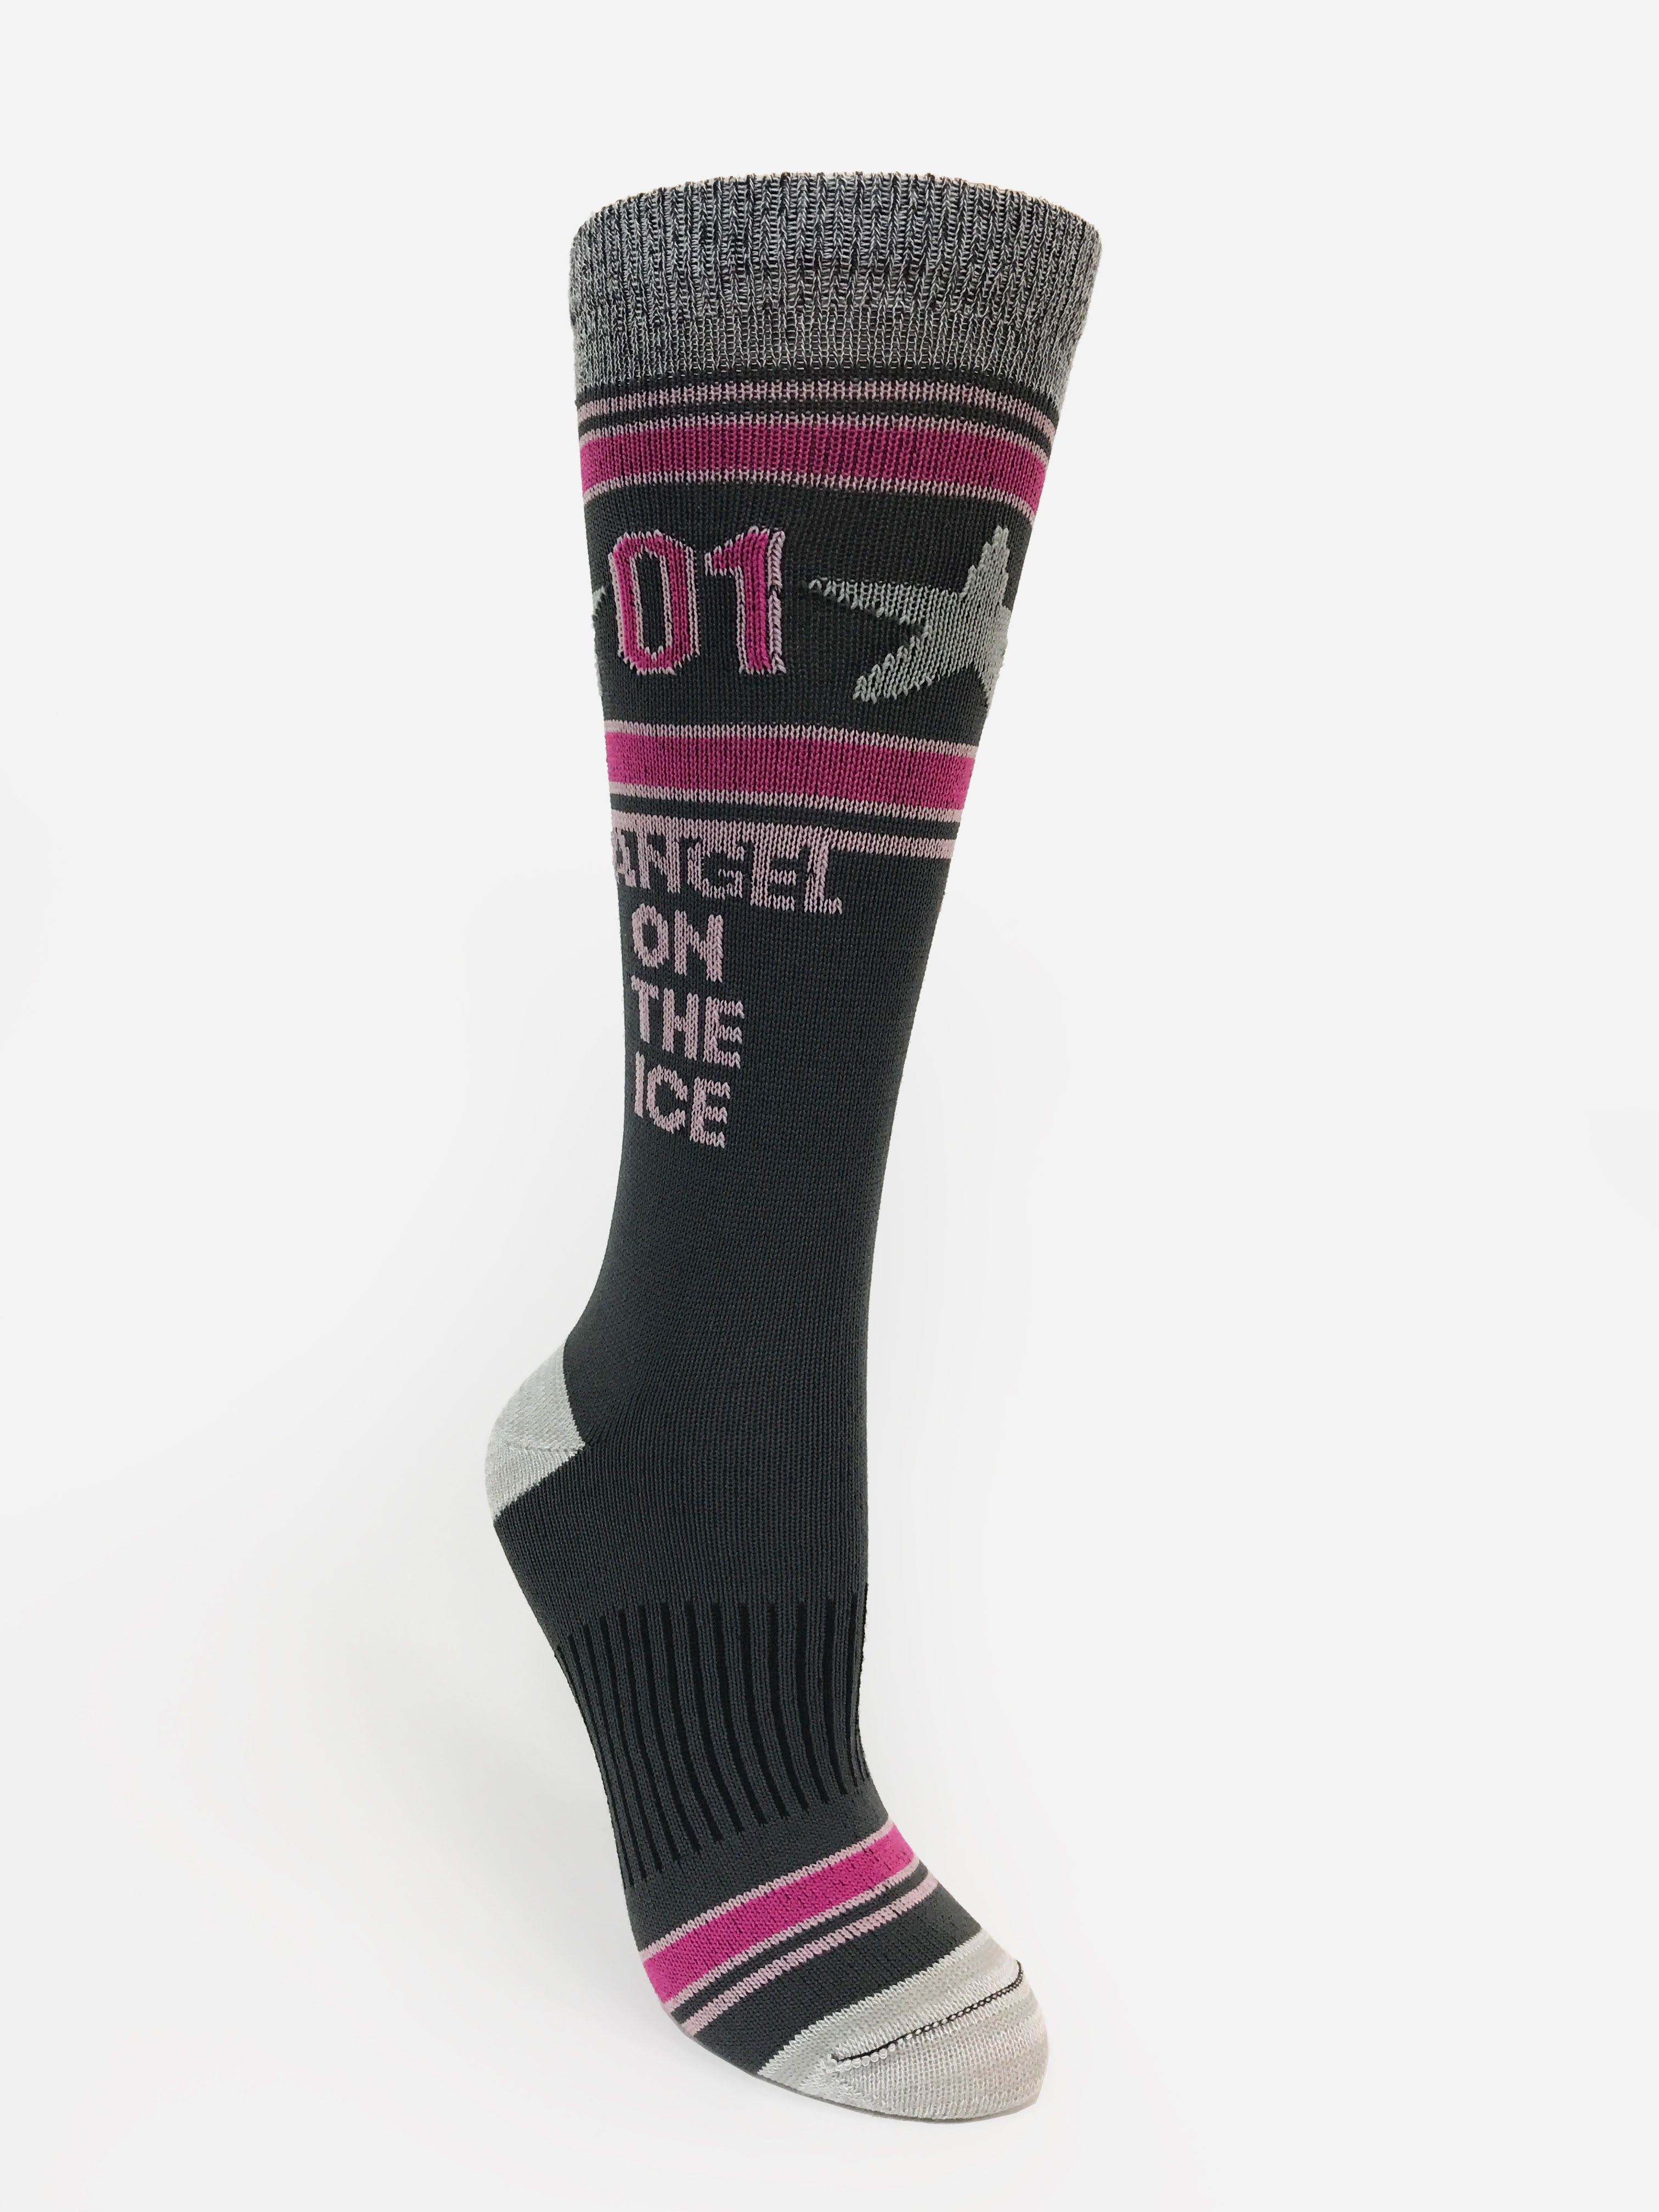 """Angel on Ice"" Shop Inspiration with our Performance Motivational Socks by HKYSOX. We strategically designed these socks to reduces bulk and deliver superior comfort and breathability."